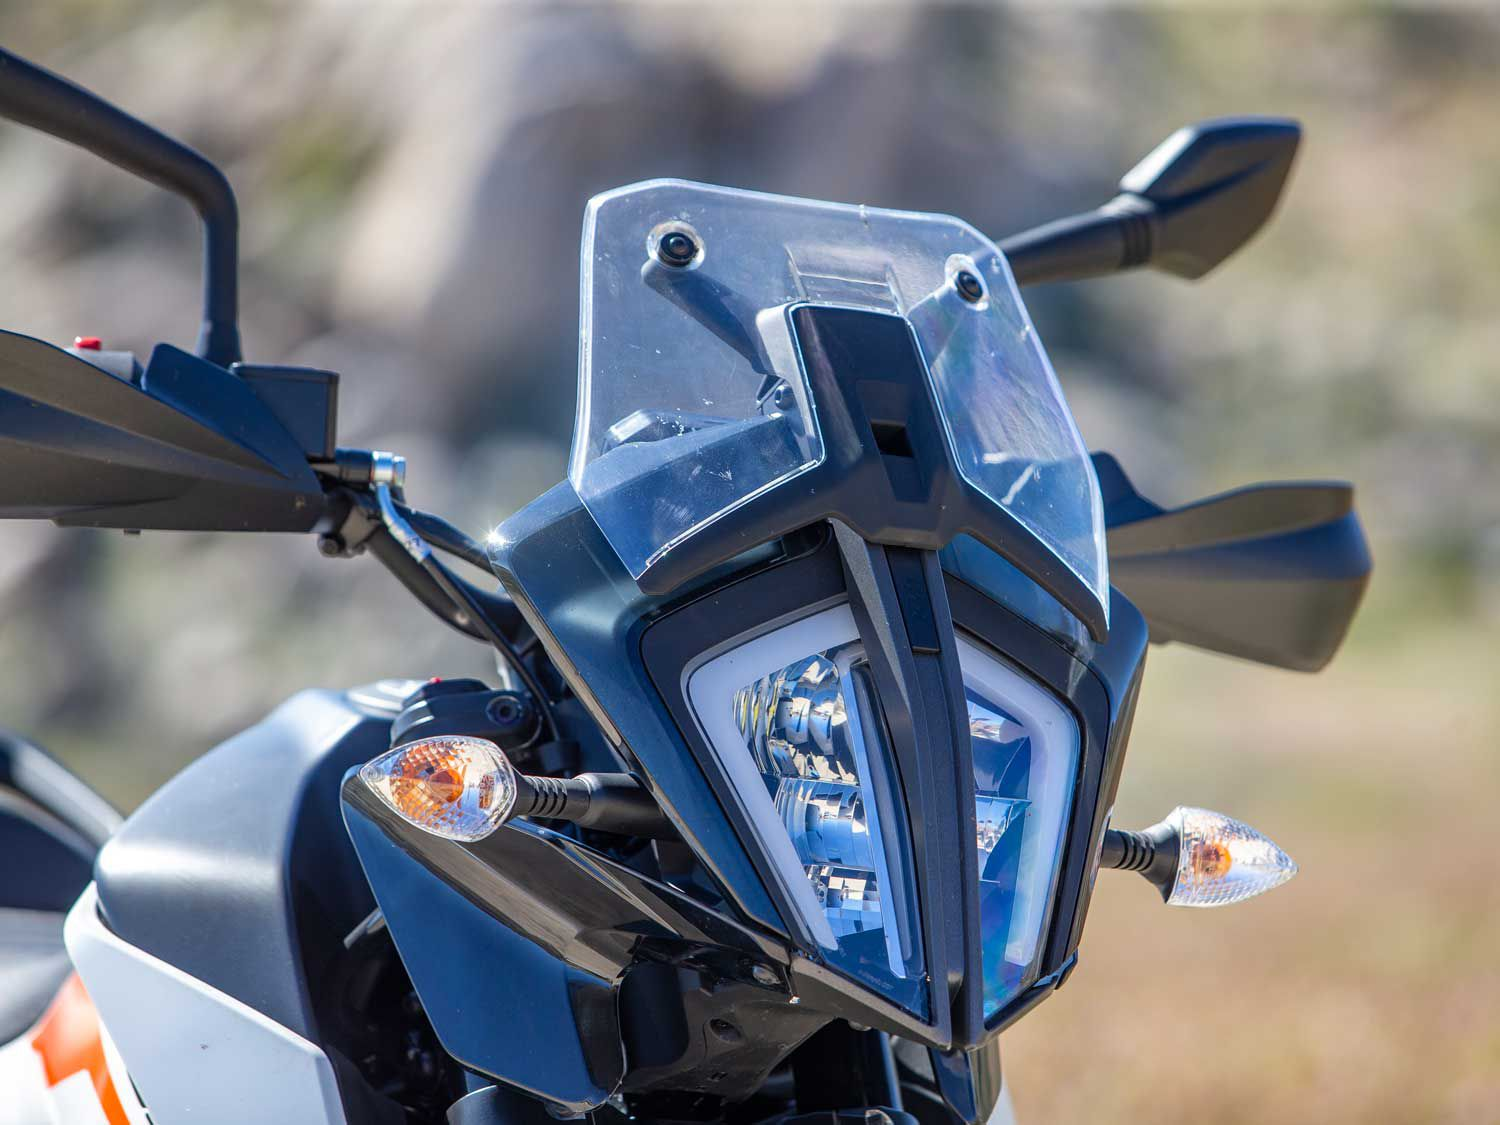 The 390 Adventure is a great-looking motorcycle when viewed at any angle. A bright LED headlamp does a fantastic job illuminating dark streets.